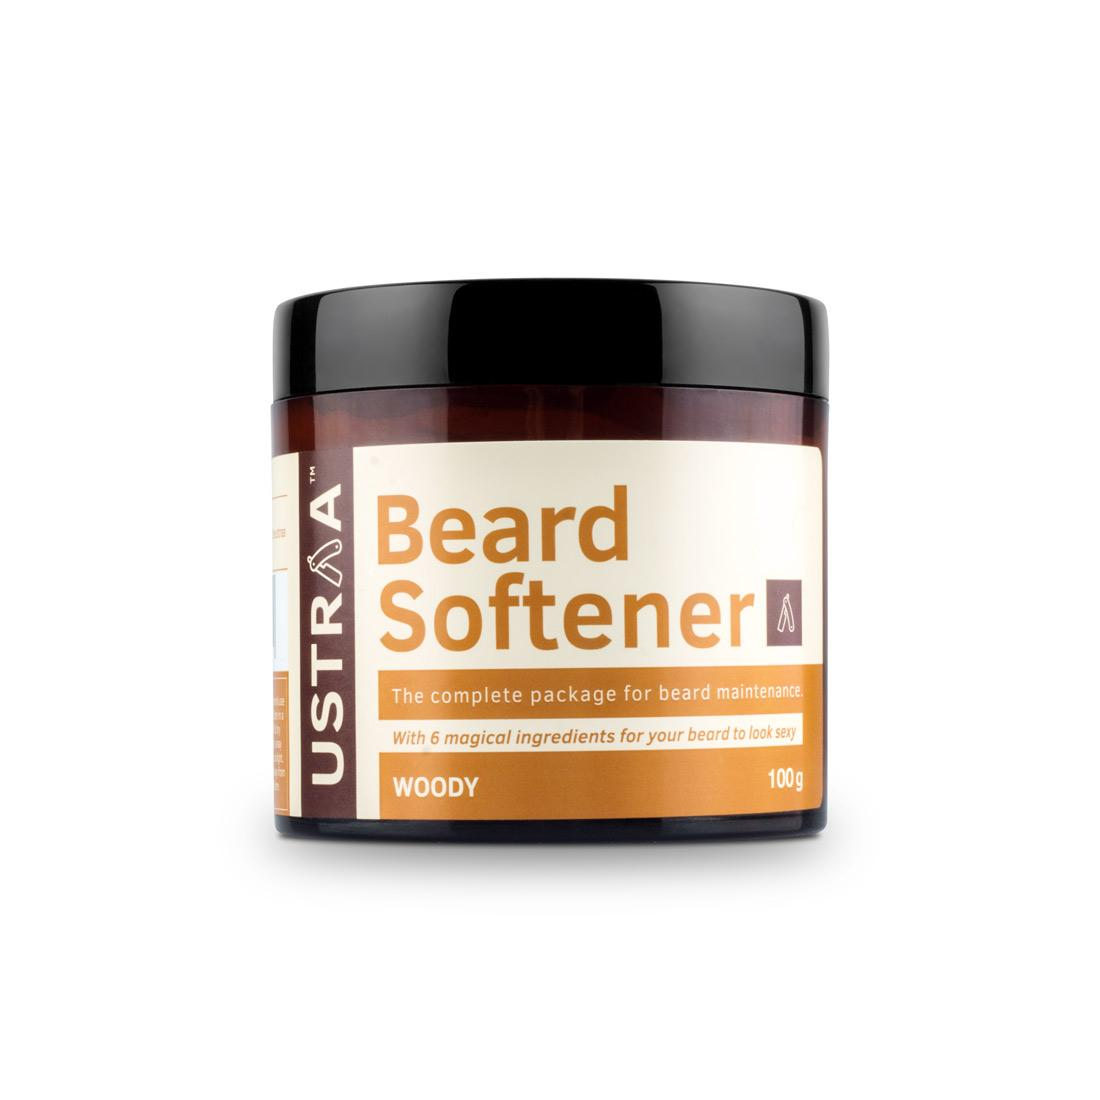 Ustraa Beard Softener Woody with Cedarwood and Argan oil - for a Nourished, Soft and Healthy Beard, 100g